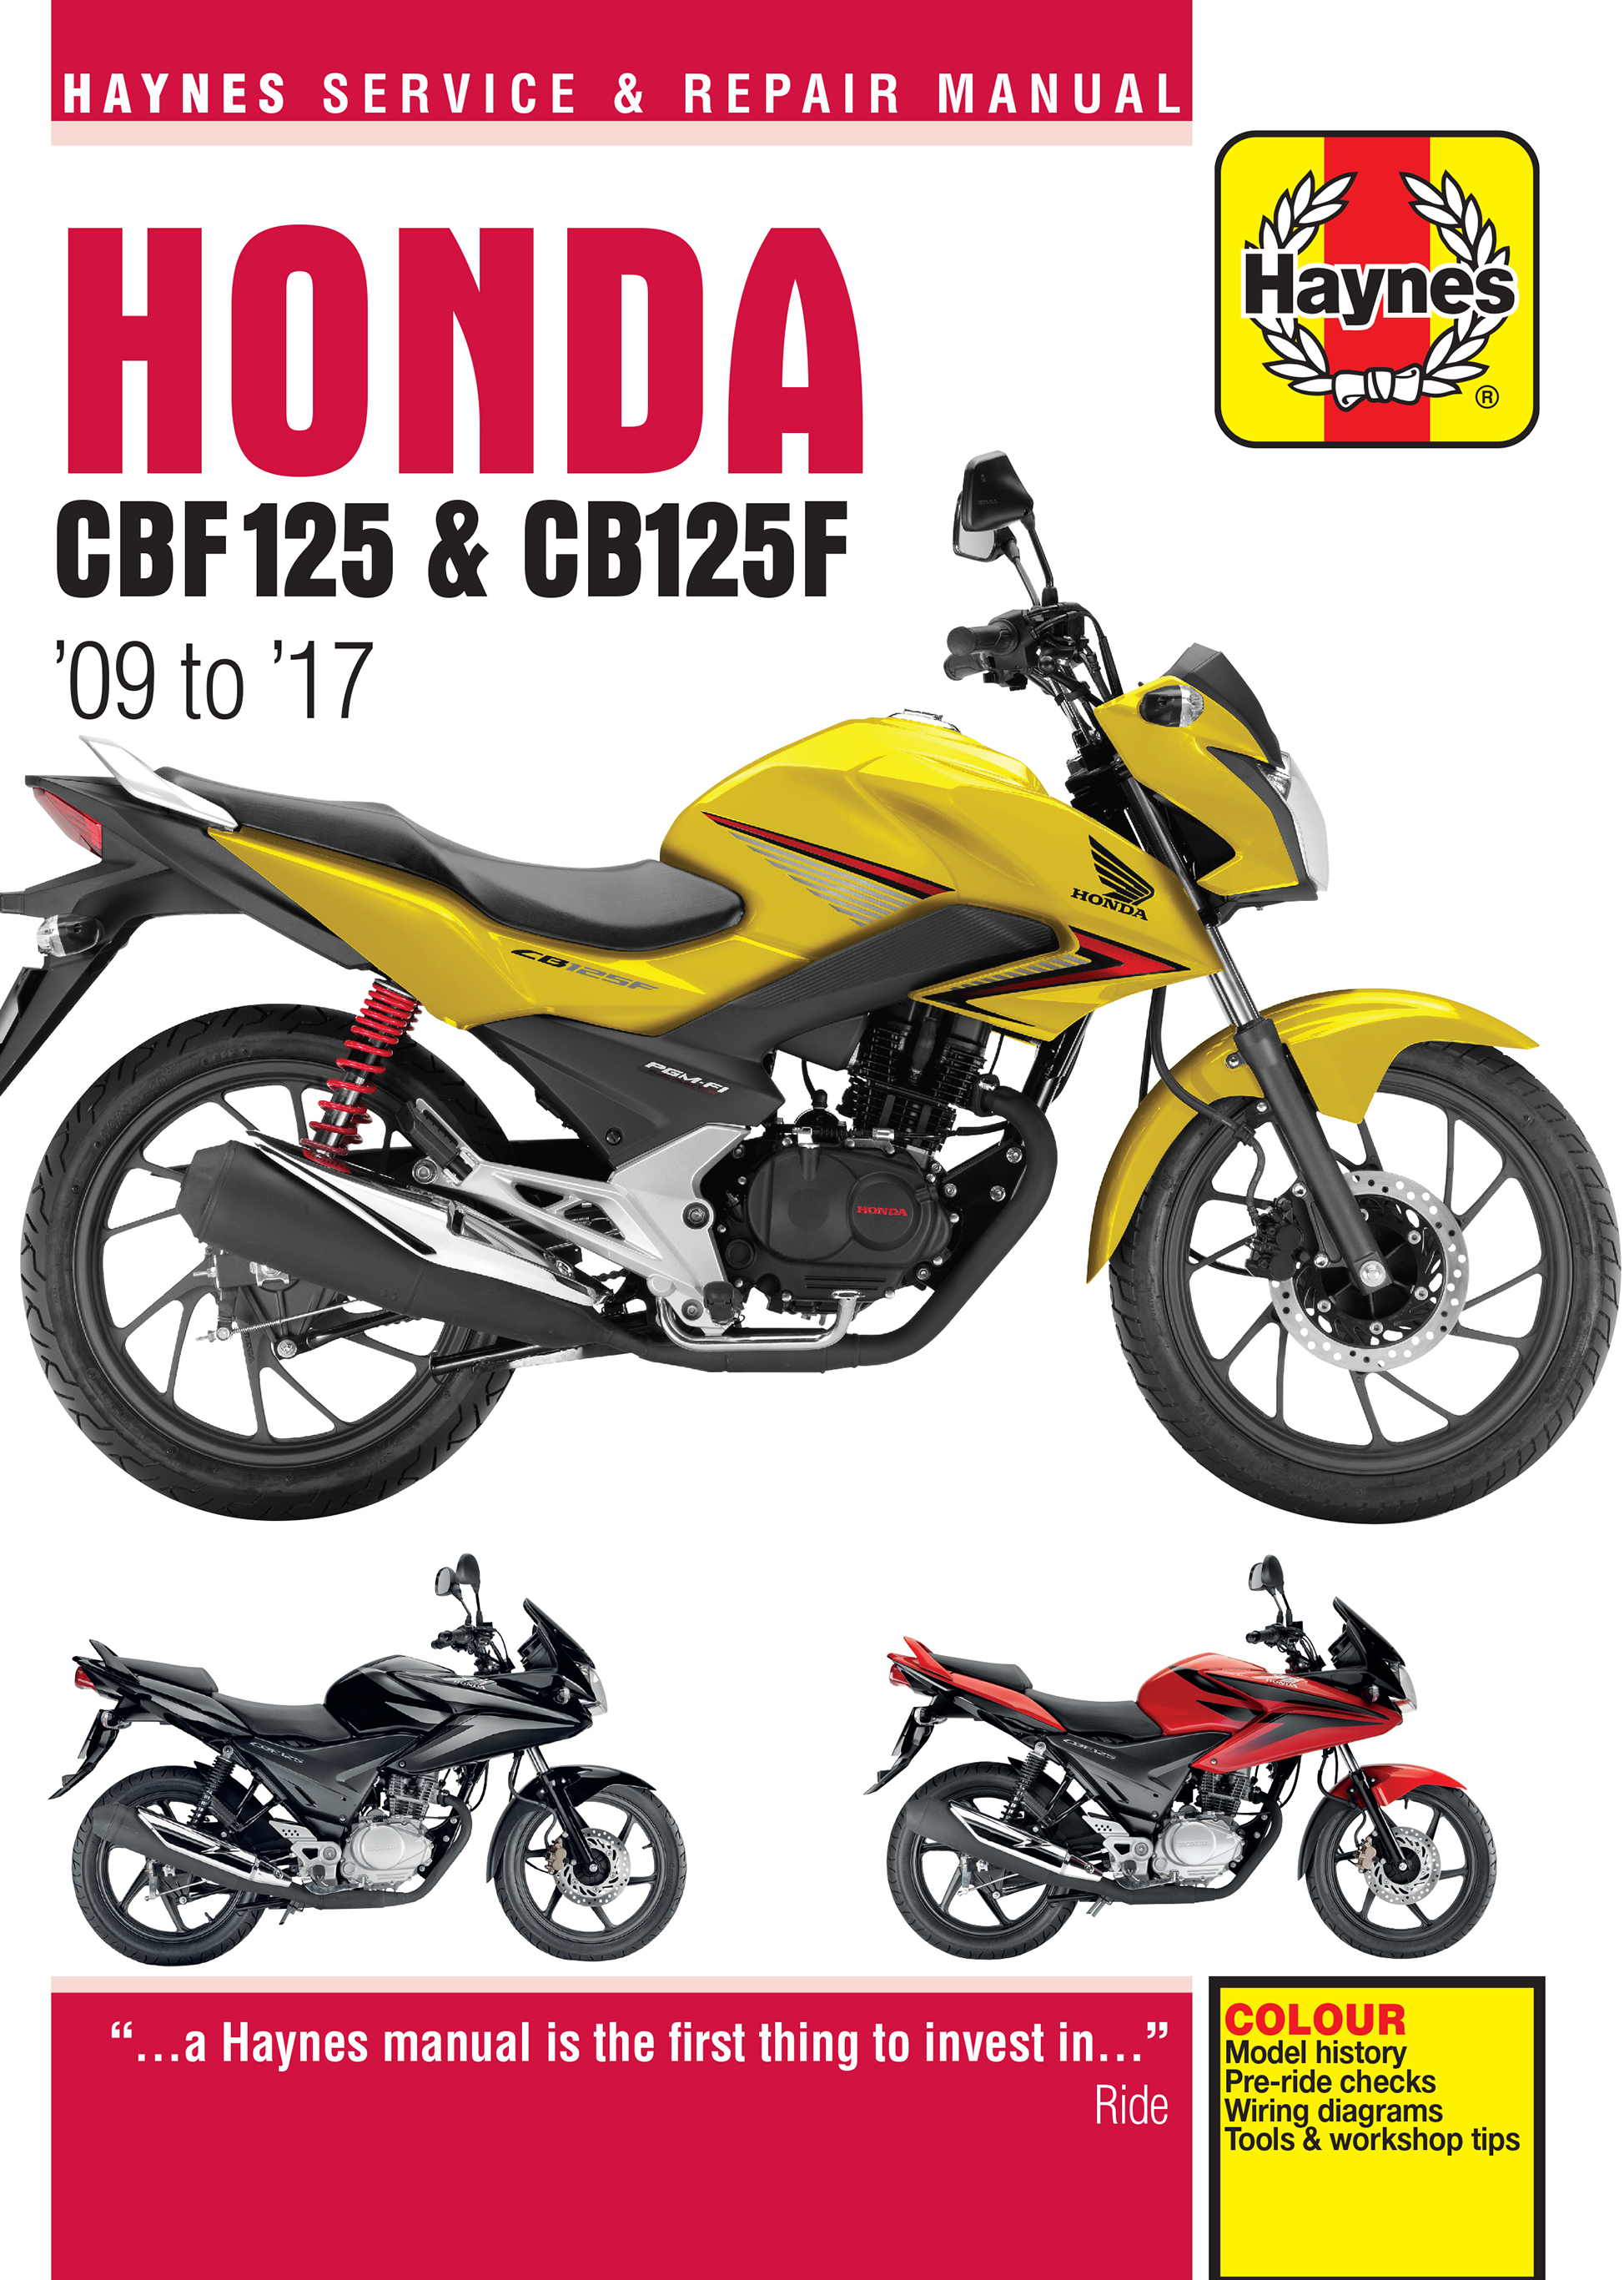 Of Honda Cb 125s Motorcyclecar Wiring Diagram Wire Center Power Major Fordson Forum Yesterday39s Tractors Cbf125 09 17 Haynes Repair Manual Publishing Rh Com